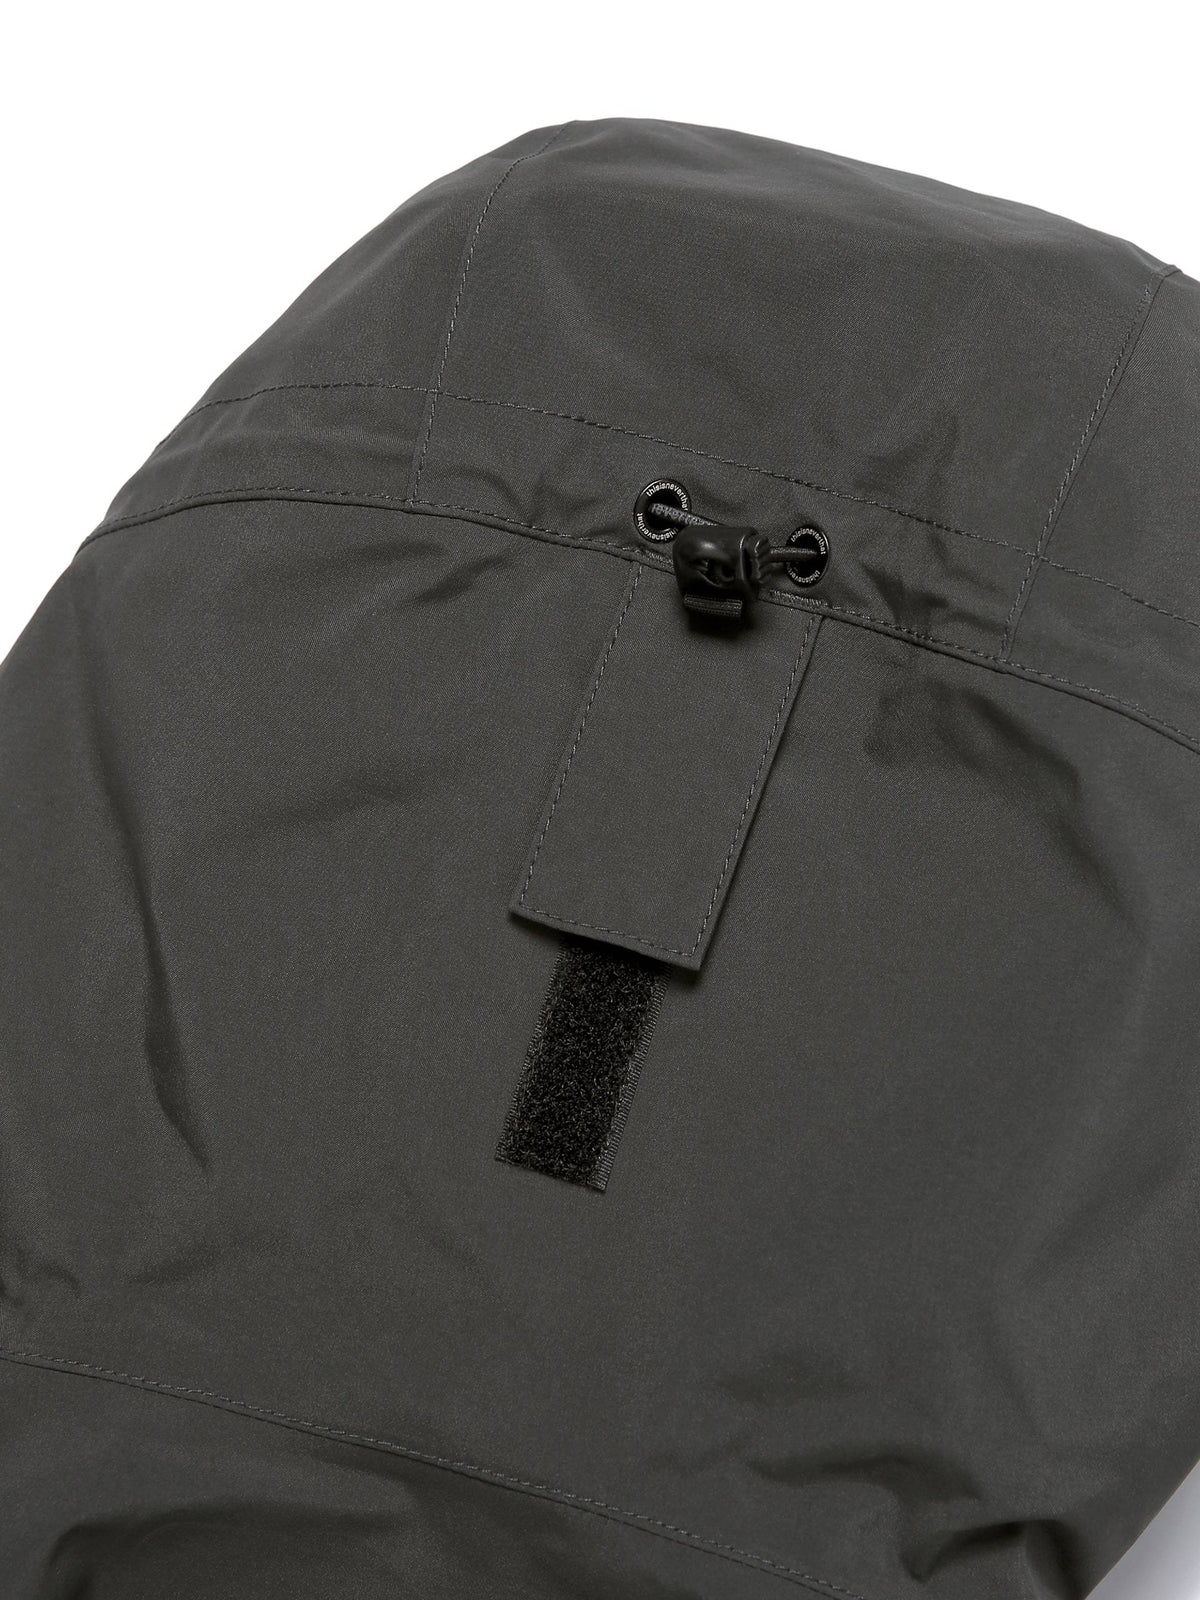 GORE-TEX Paclite Jacket - thisisneverthat